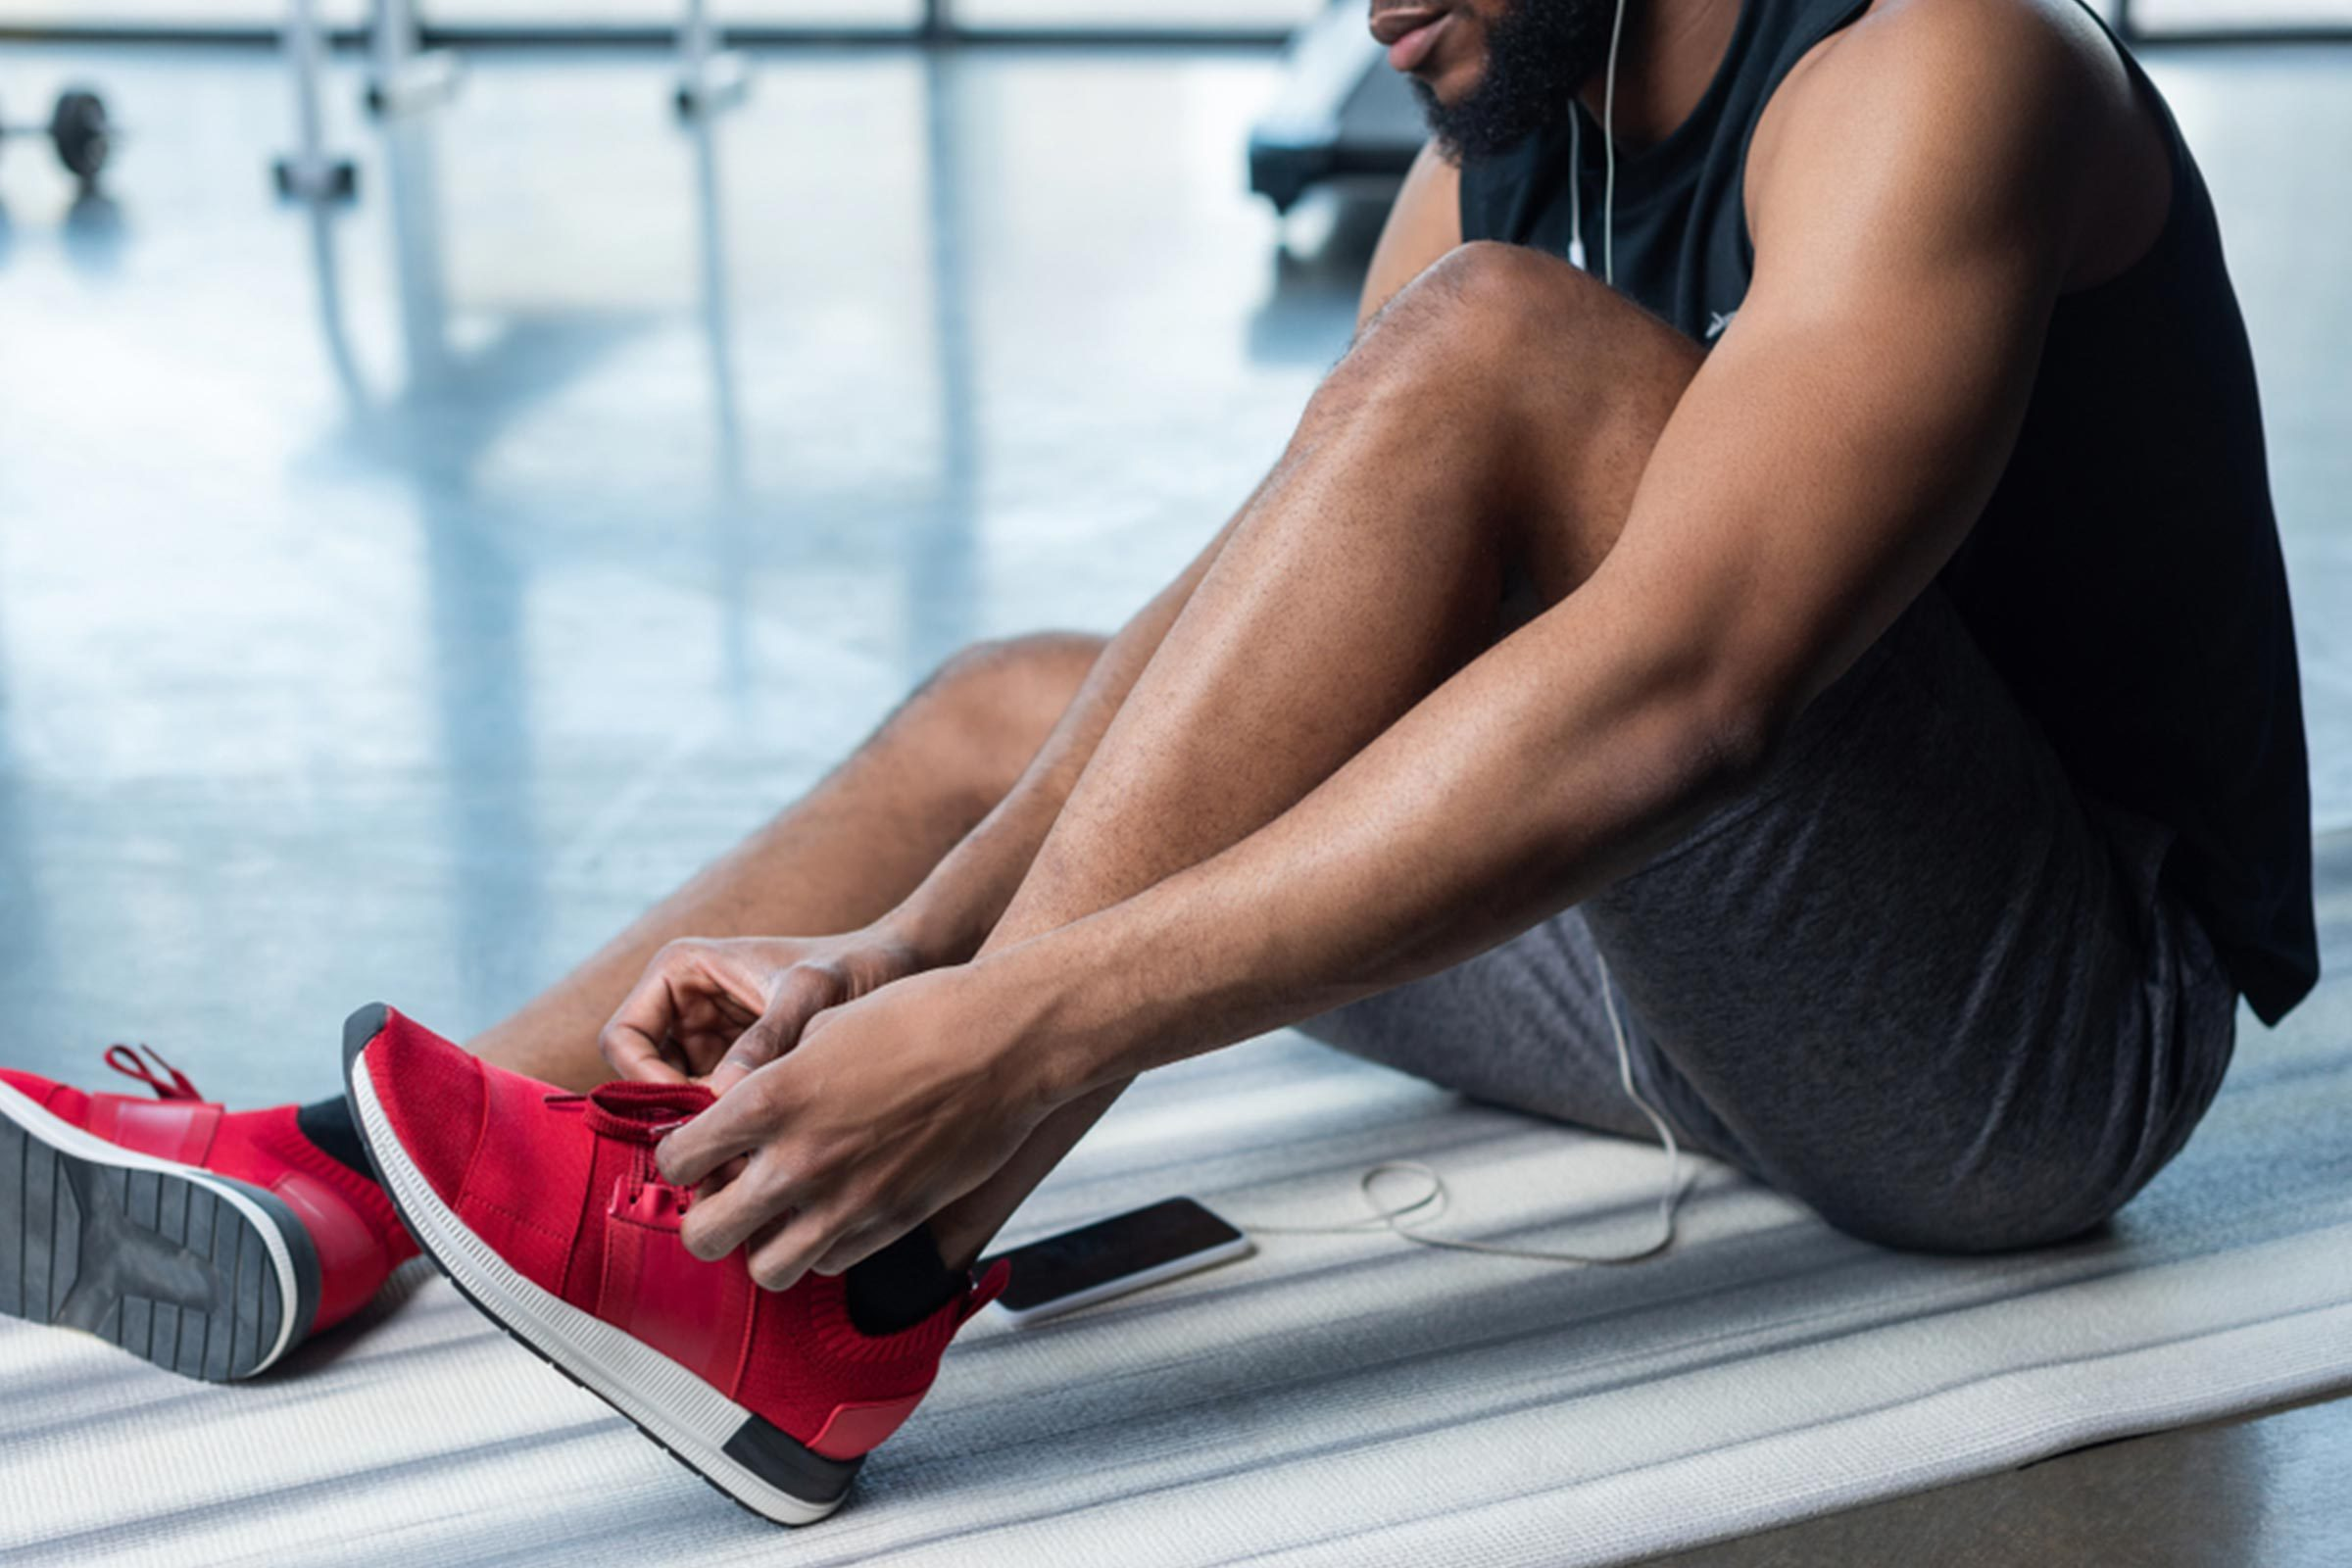 man lacing up sneakers before exercise